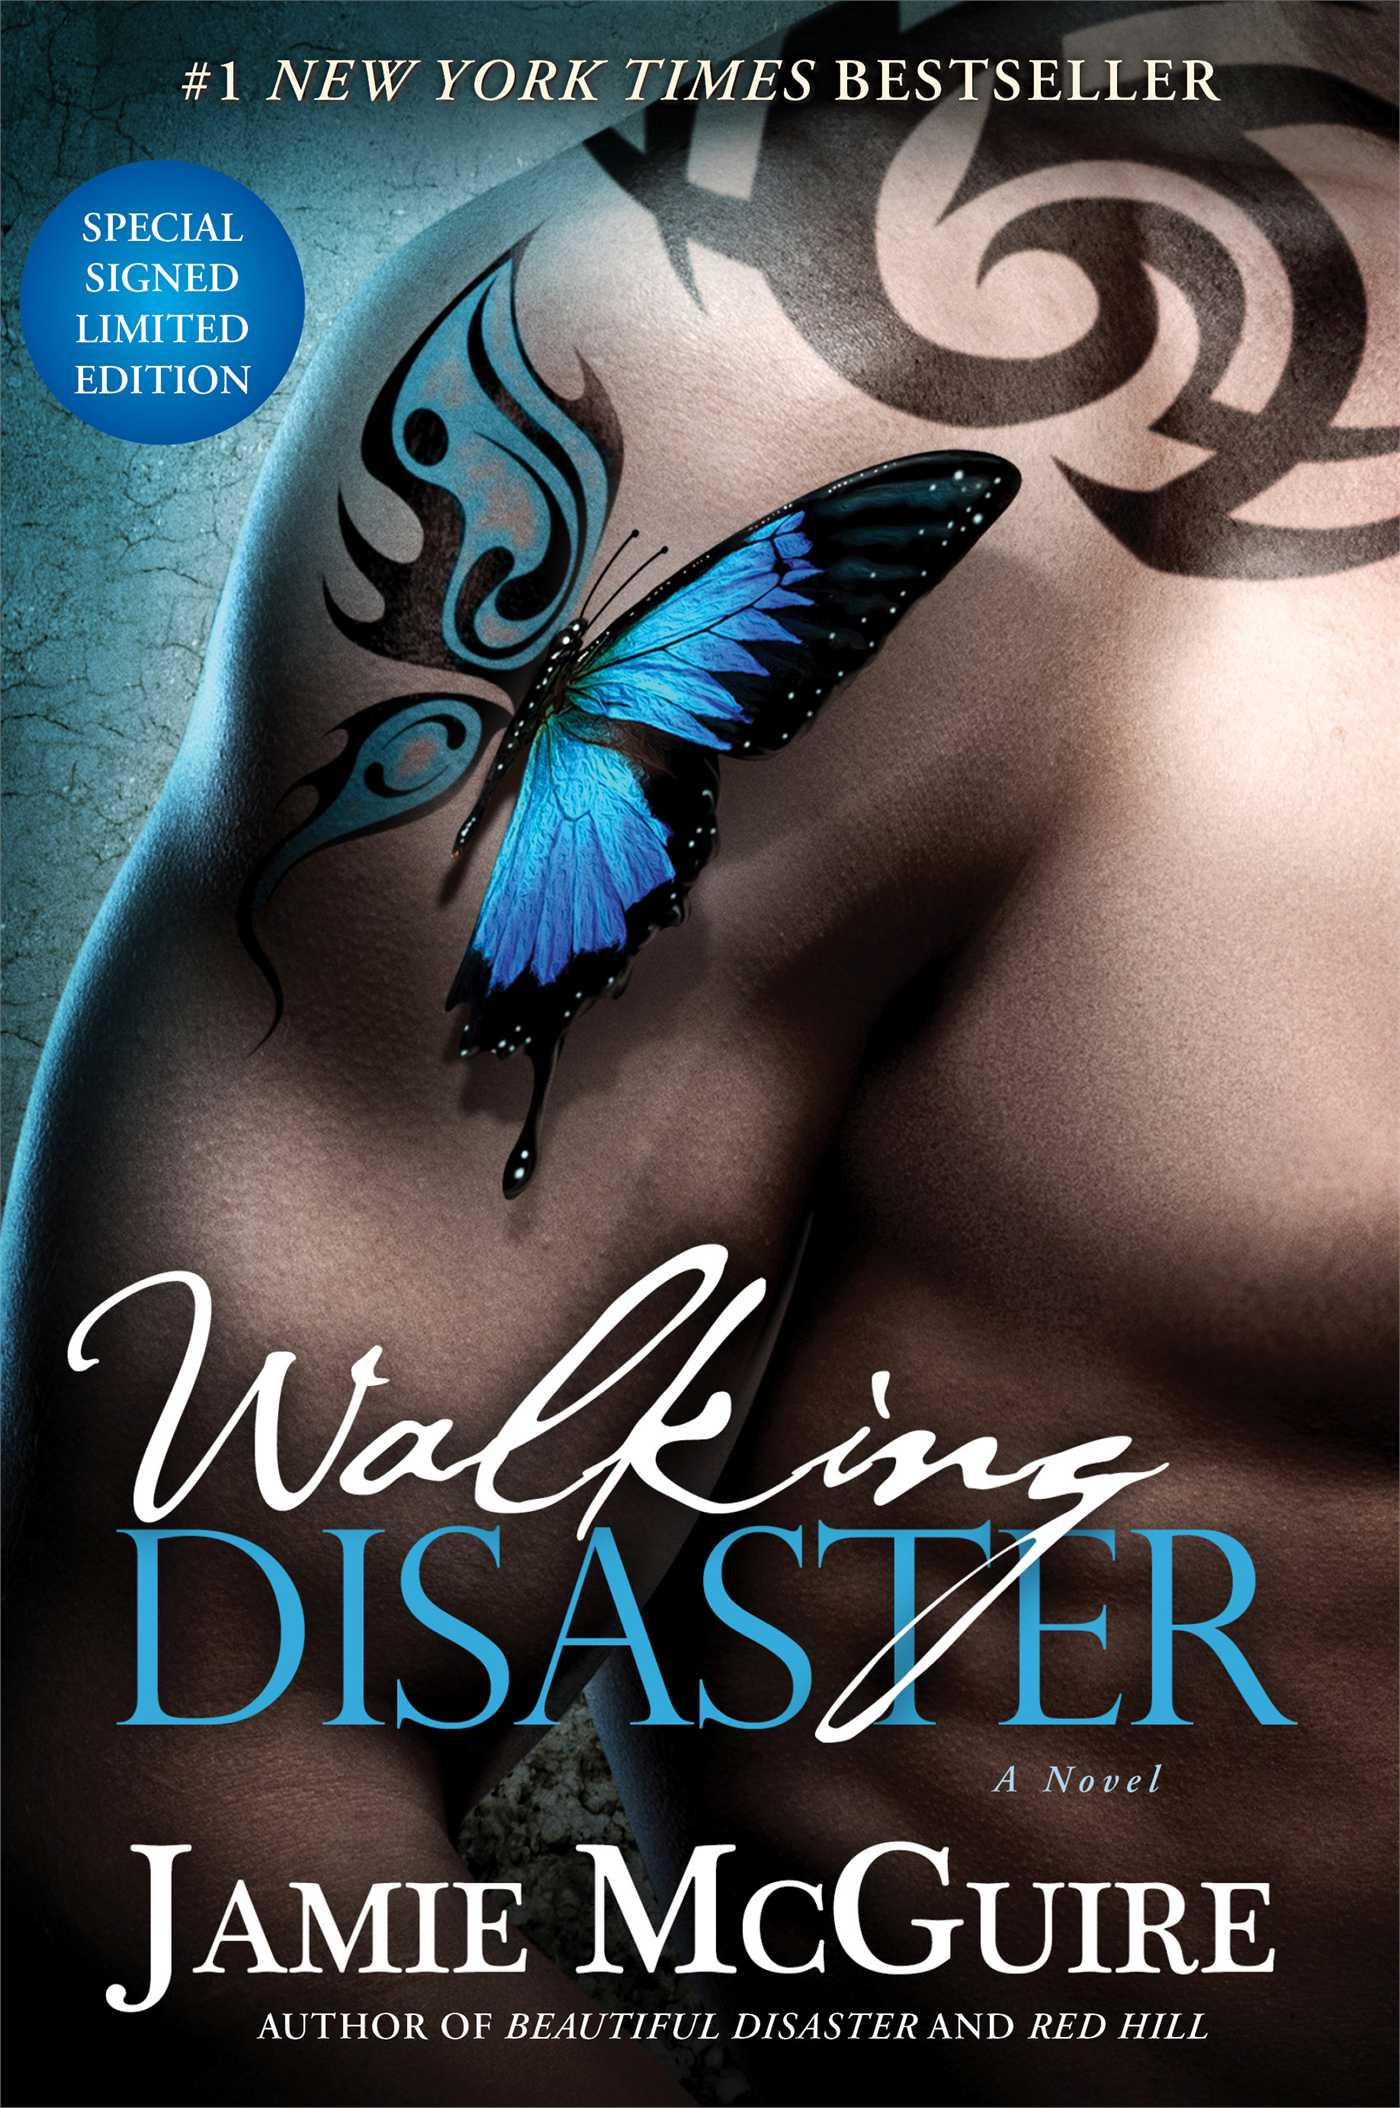 Walking disaster signed limited edition 9781476751252 hr